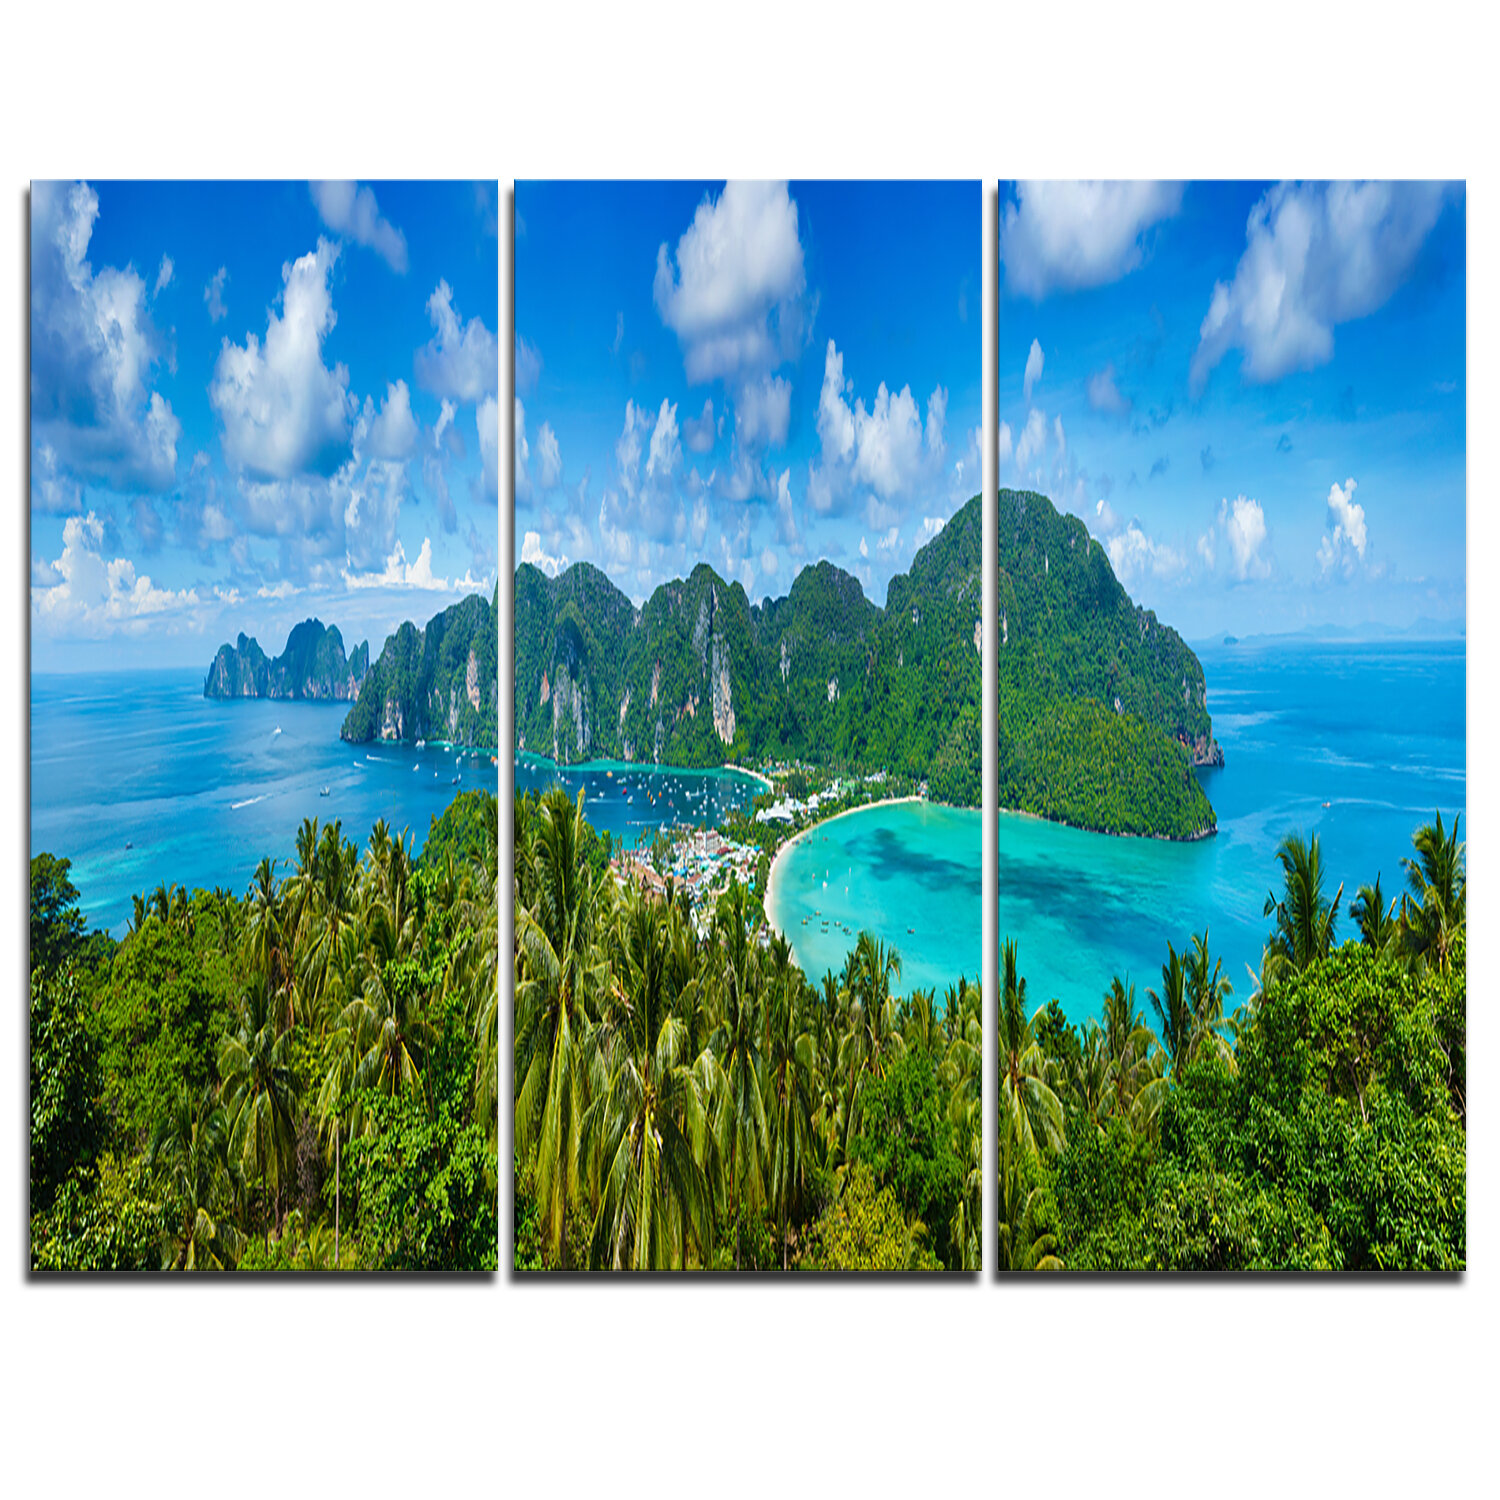 Designart Tropical Island Panorama 3 Piece Graphic Art On Wrapped Canvas Set Wayfair